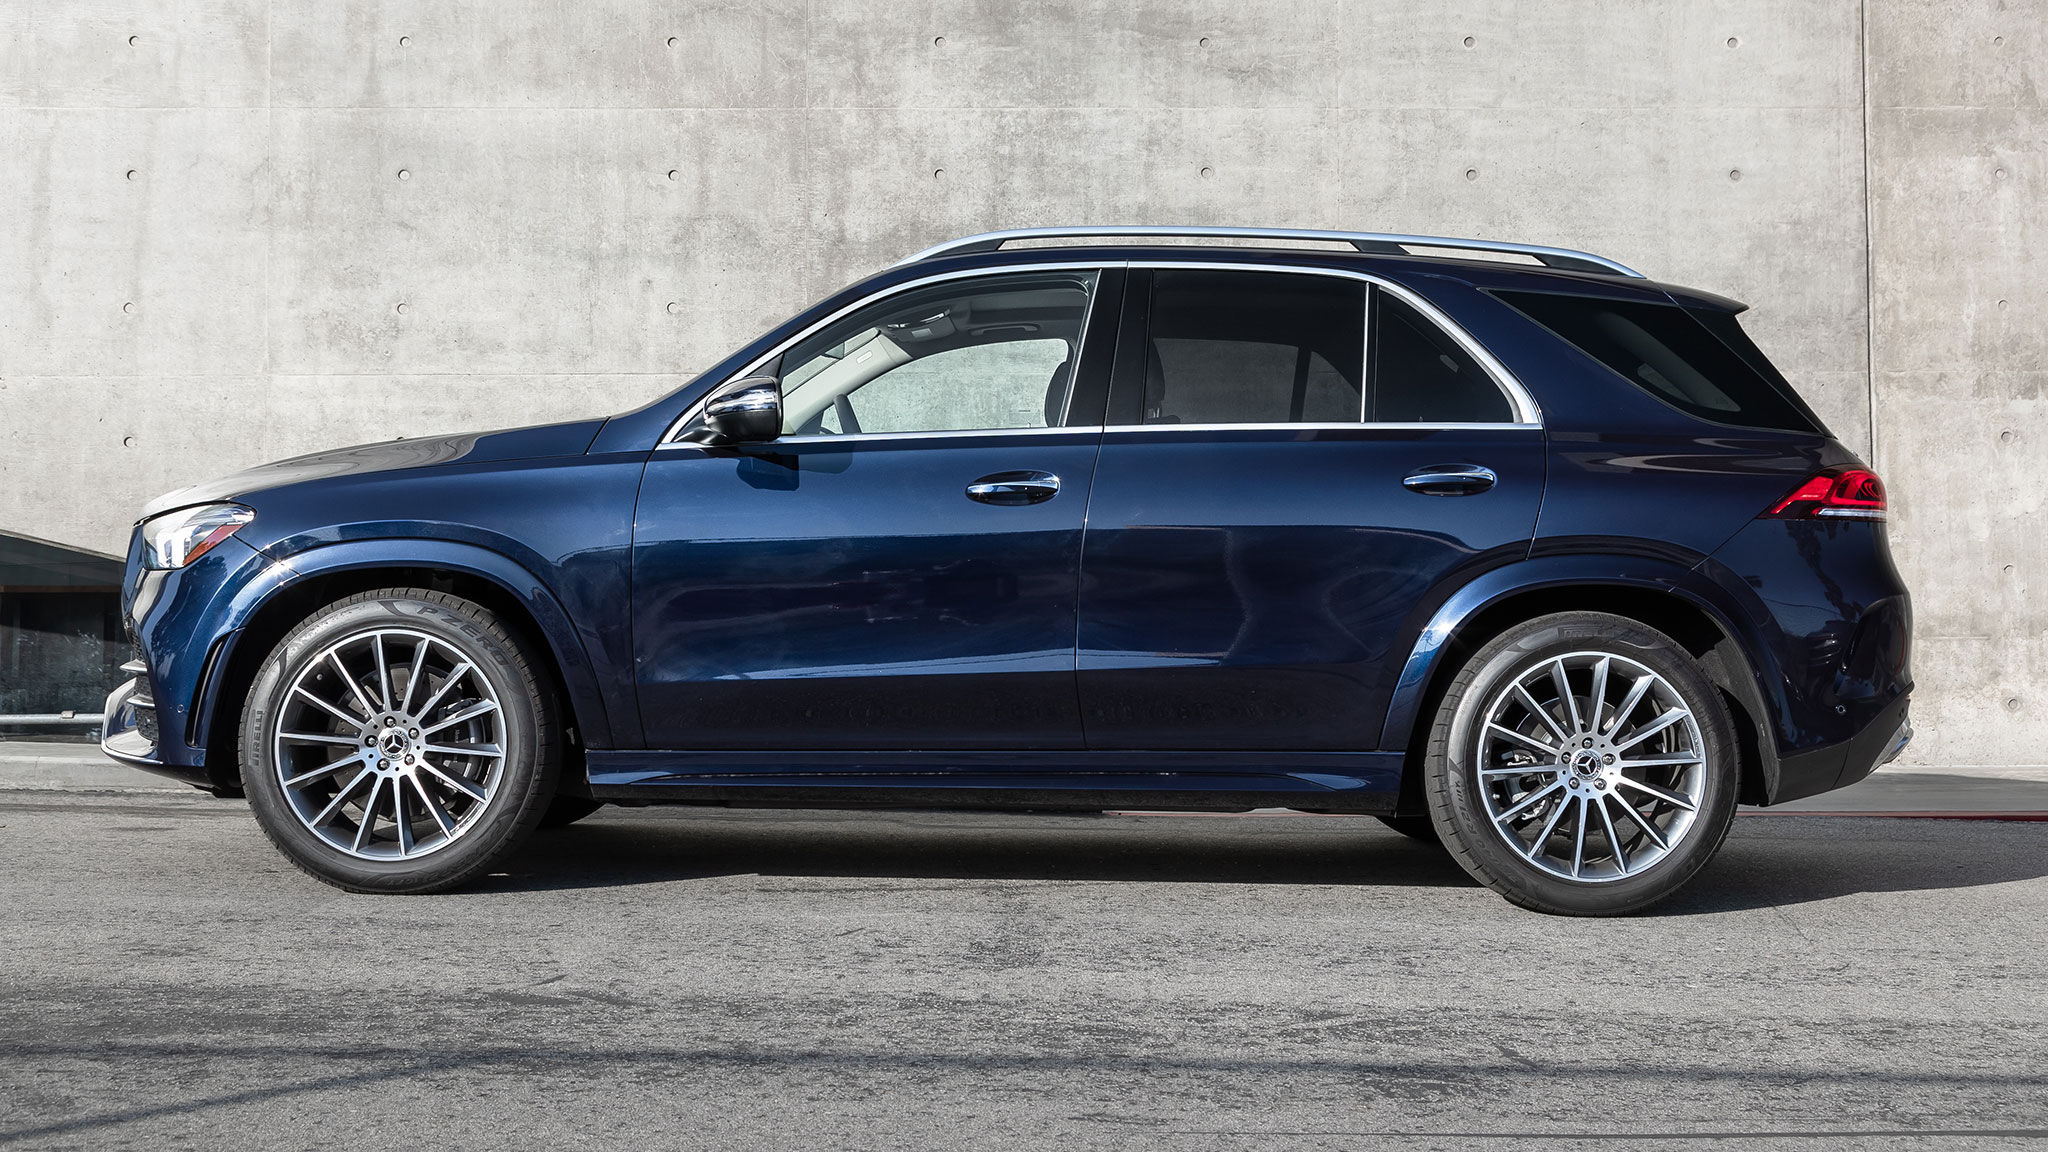 2021 Mercedes Benz Gle 450 Price Review Ratings And Pictures Carindigo Com